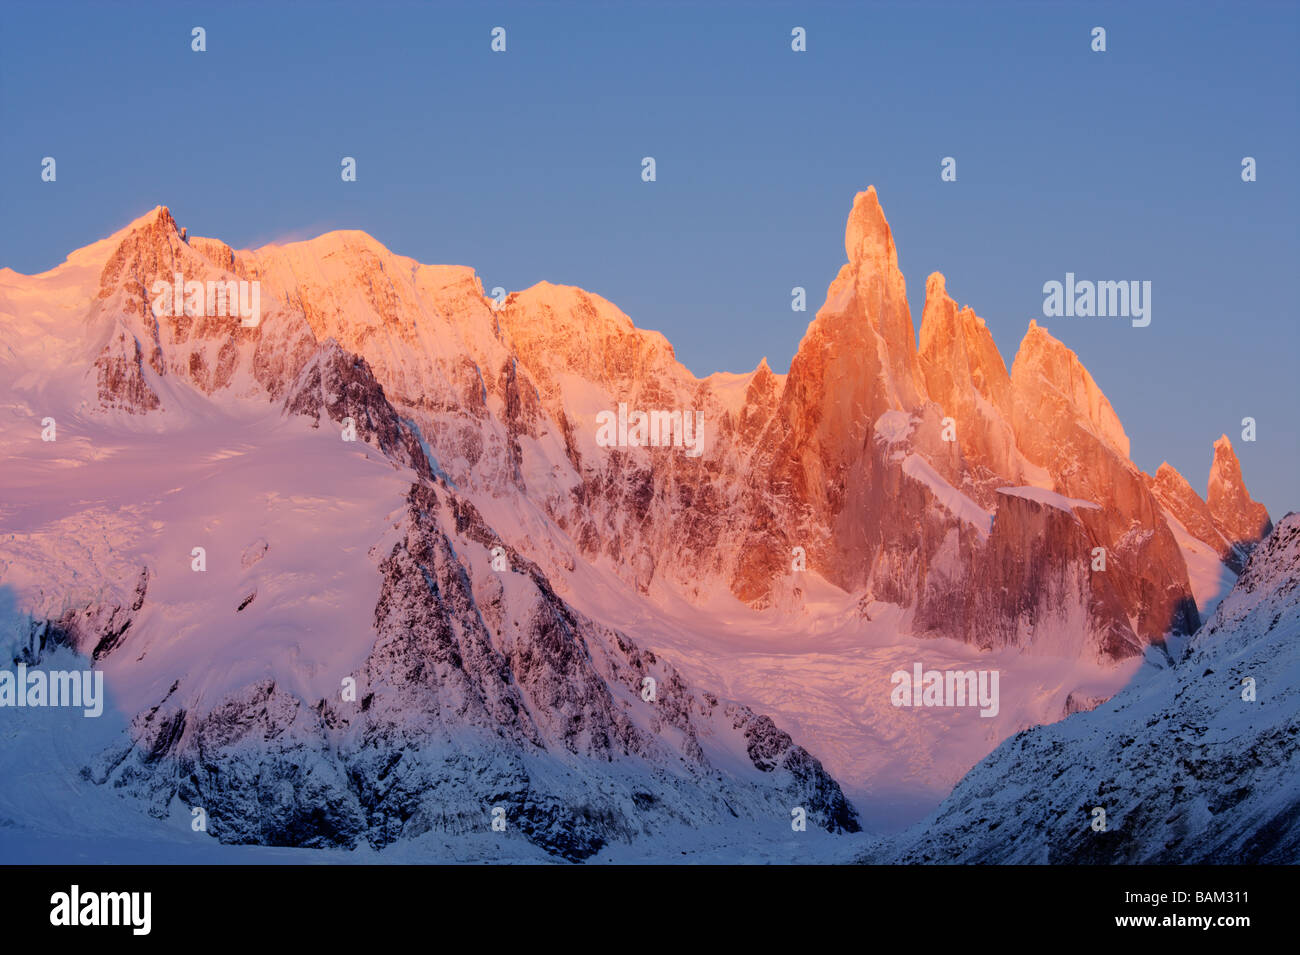 Sunrise over the Cerro Torre mountain massif in the Andes Mountain range Argentina - Stock Image